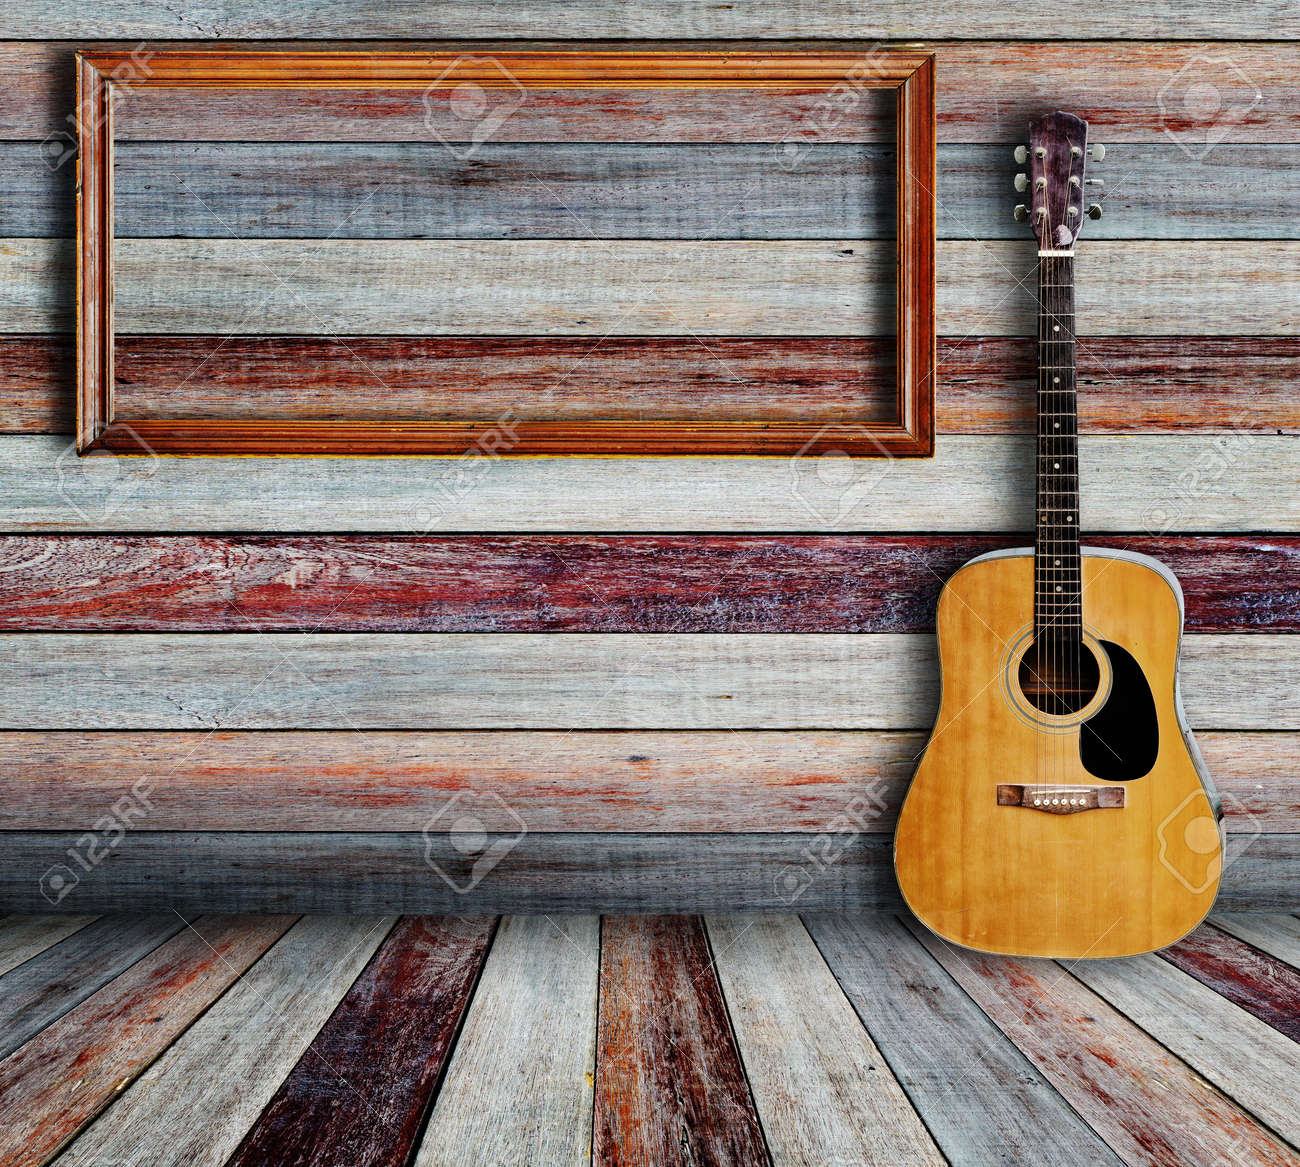 guitar and picture frame in vintage wood room stock photo 14783891